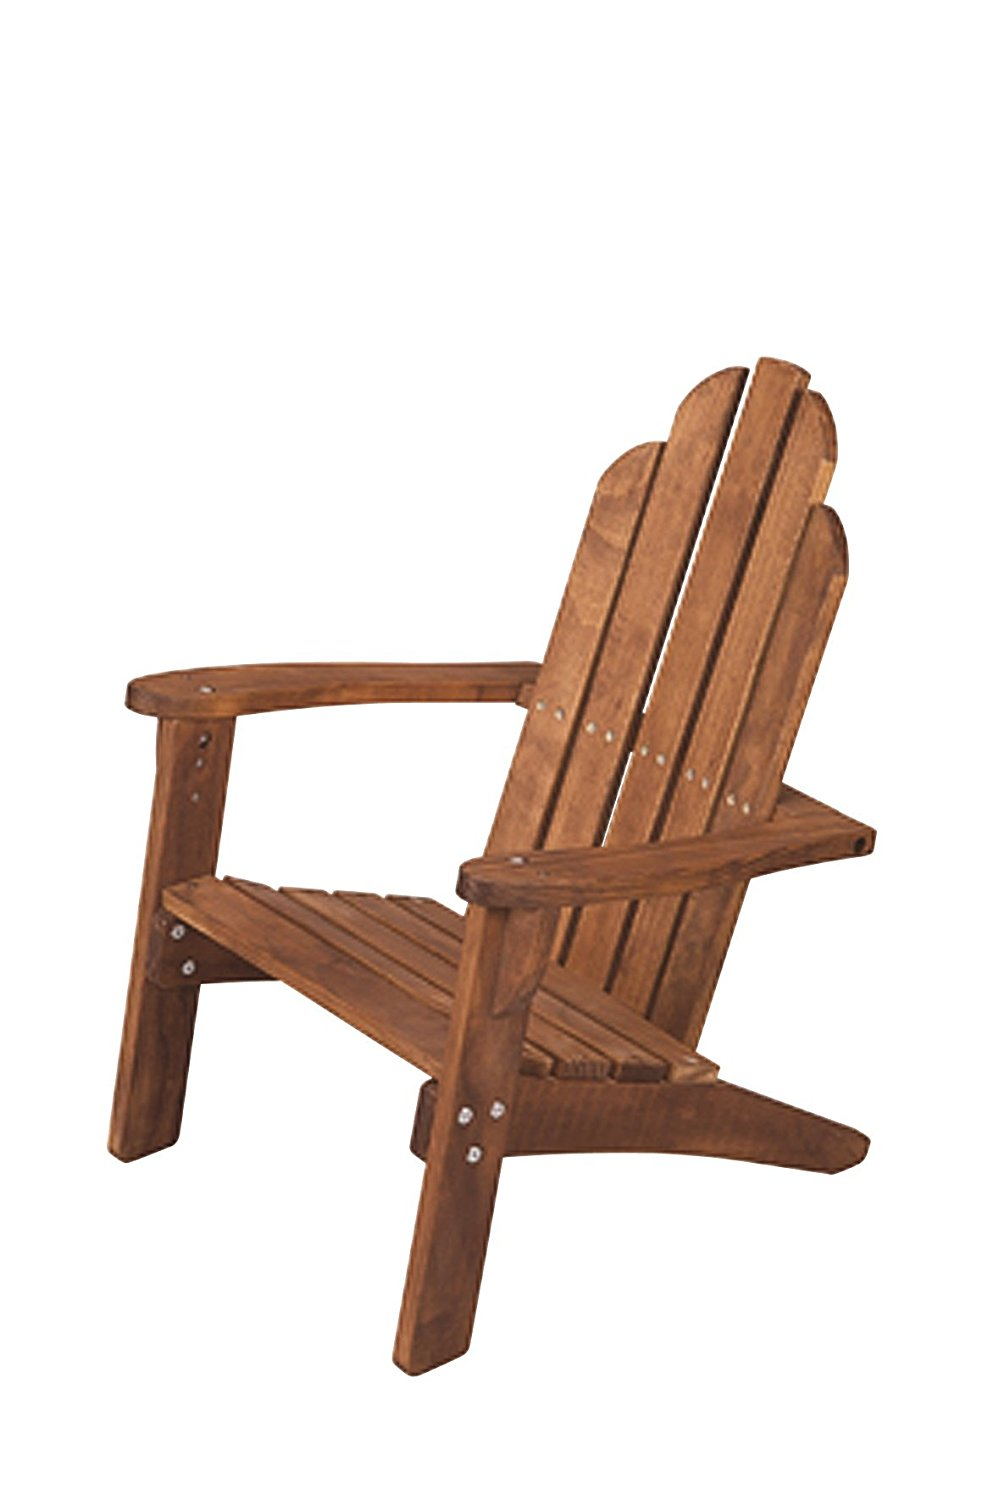 Maxim Child S Adirondack Chair Kids Outdoor Wood Patio Furniture For Backyard Lawn Deck